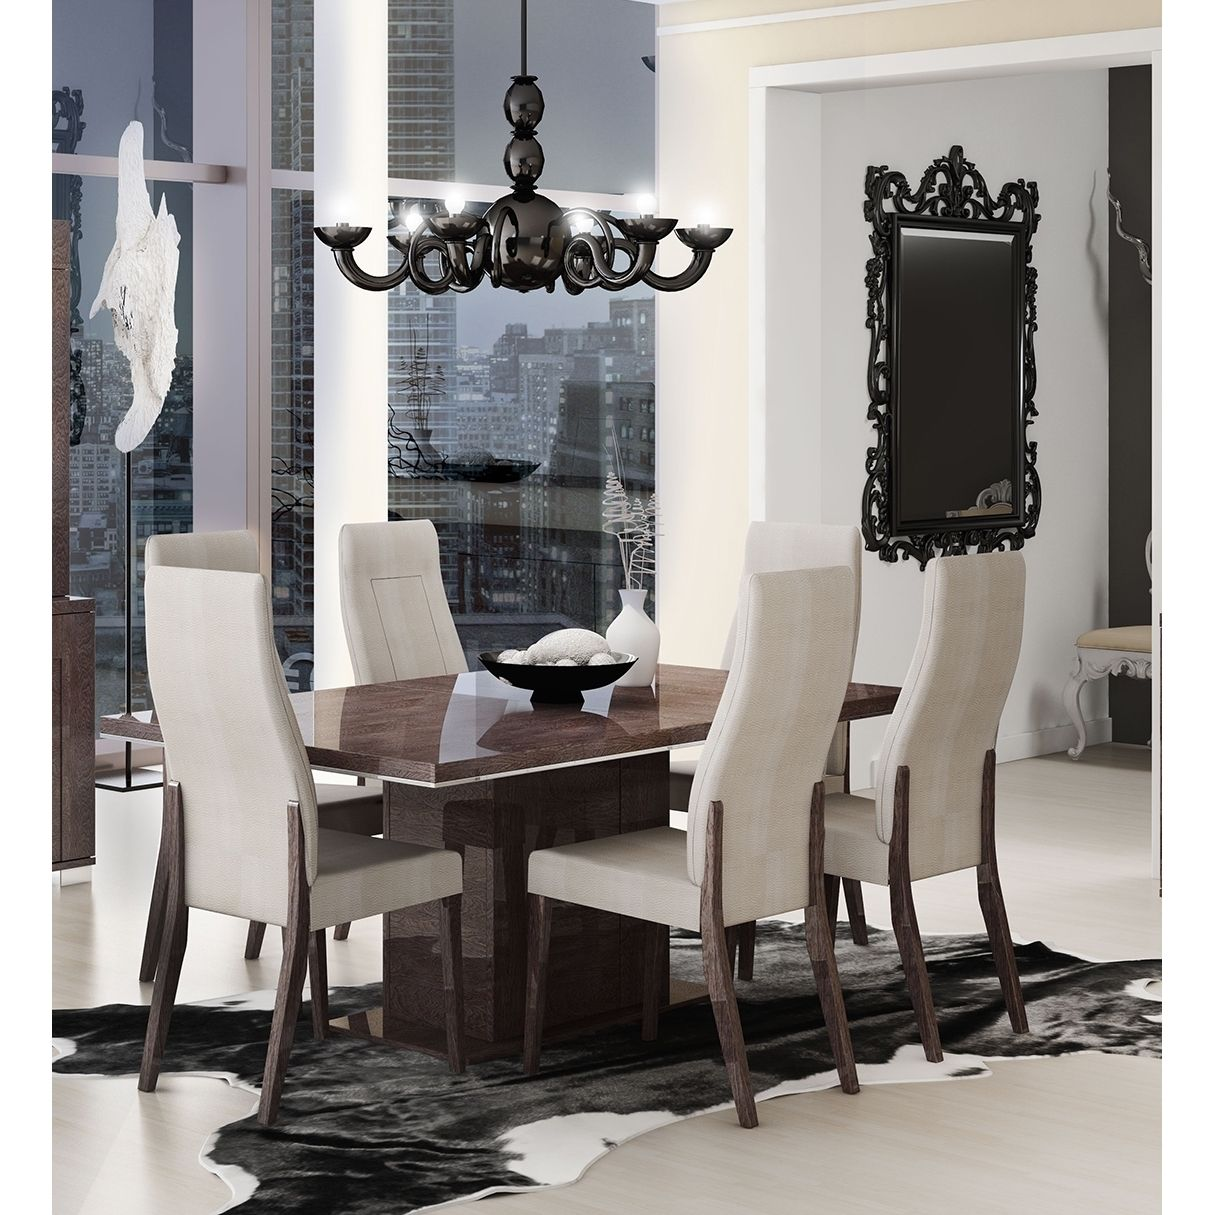 All Wood Dining Room Sets: Pin On Kitchen